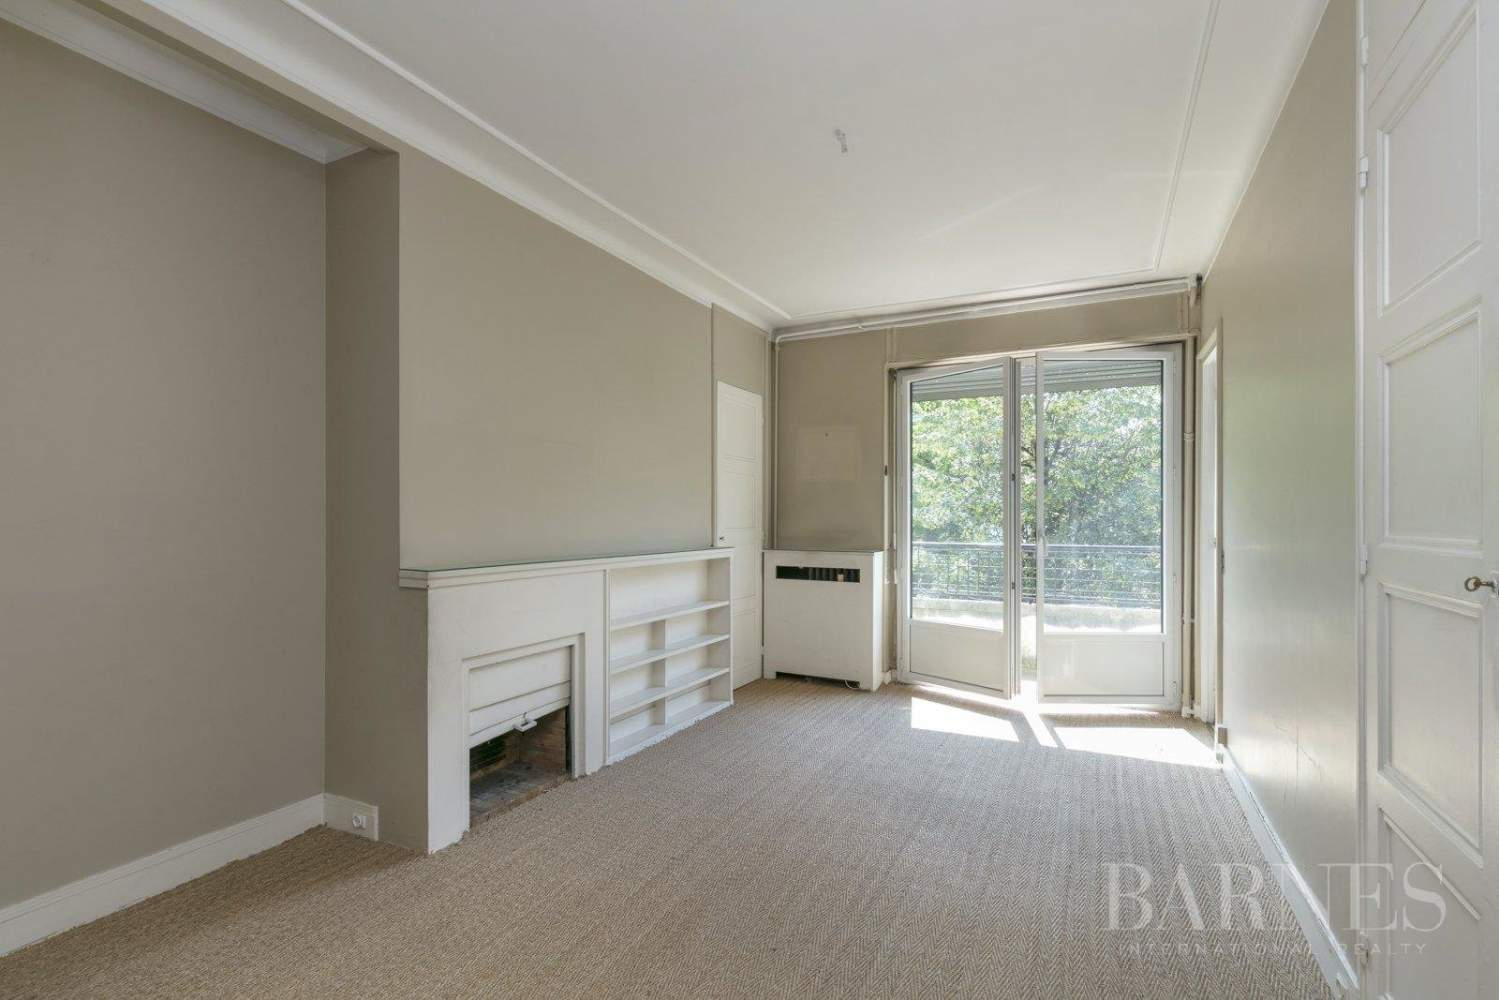 3-BEDROOM APARTMENT - CLEAR VIEWS - BALCONIES - NEUILLY / CHÂTEAU - NORTIER picture 2